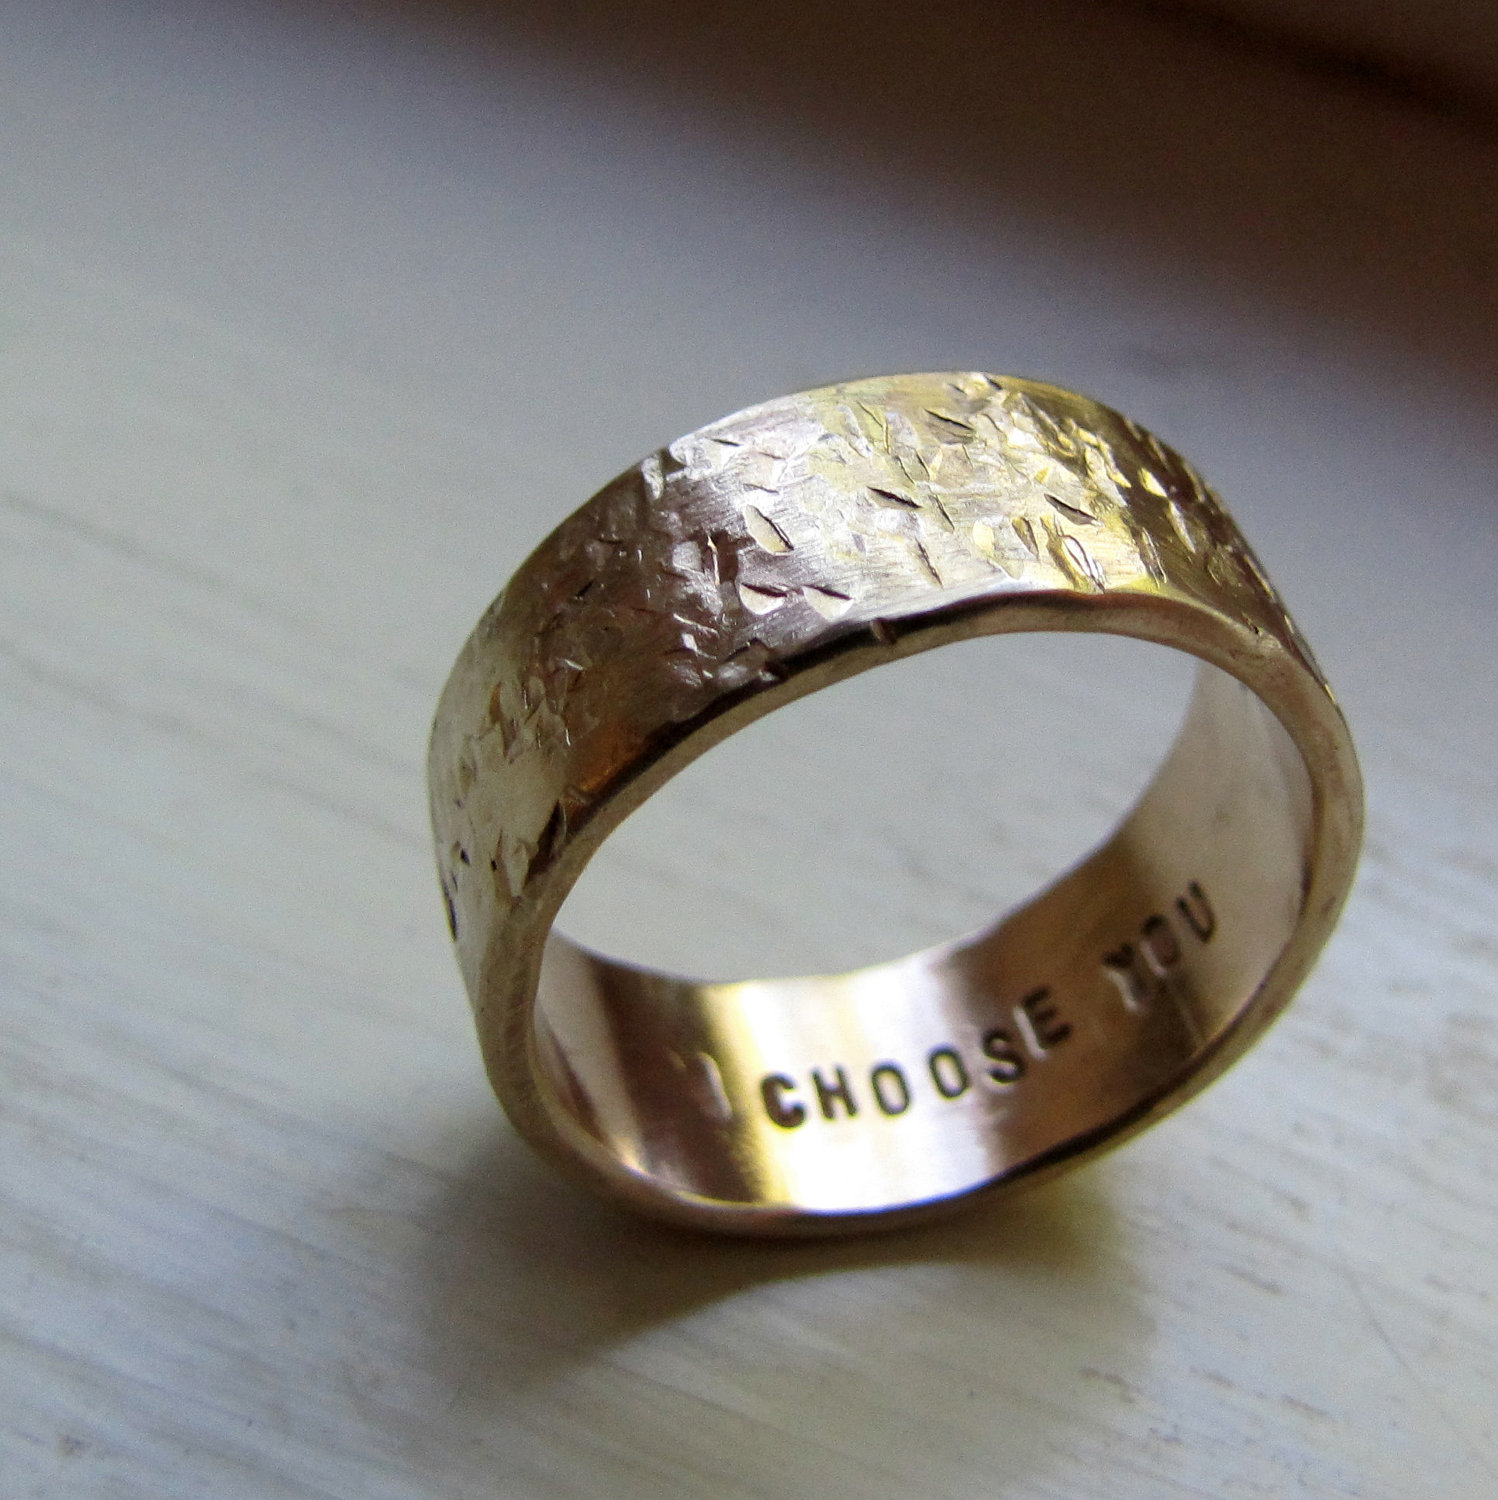 wedding-bands-your-groom-will-love-unique-wedding-rings-from-etsy-4.original